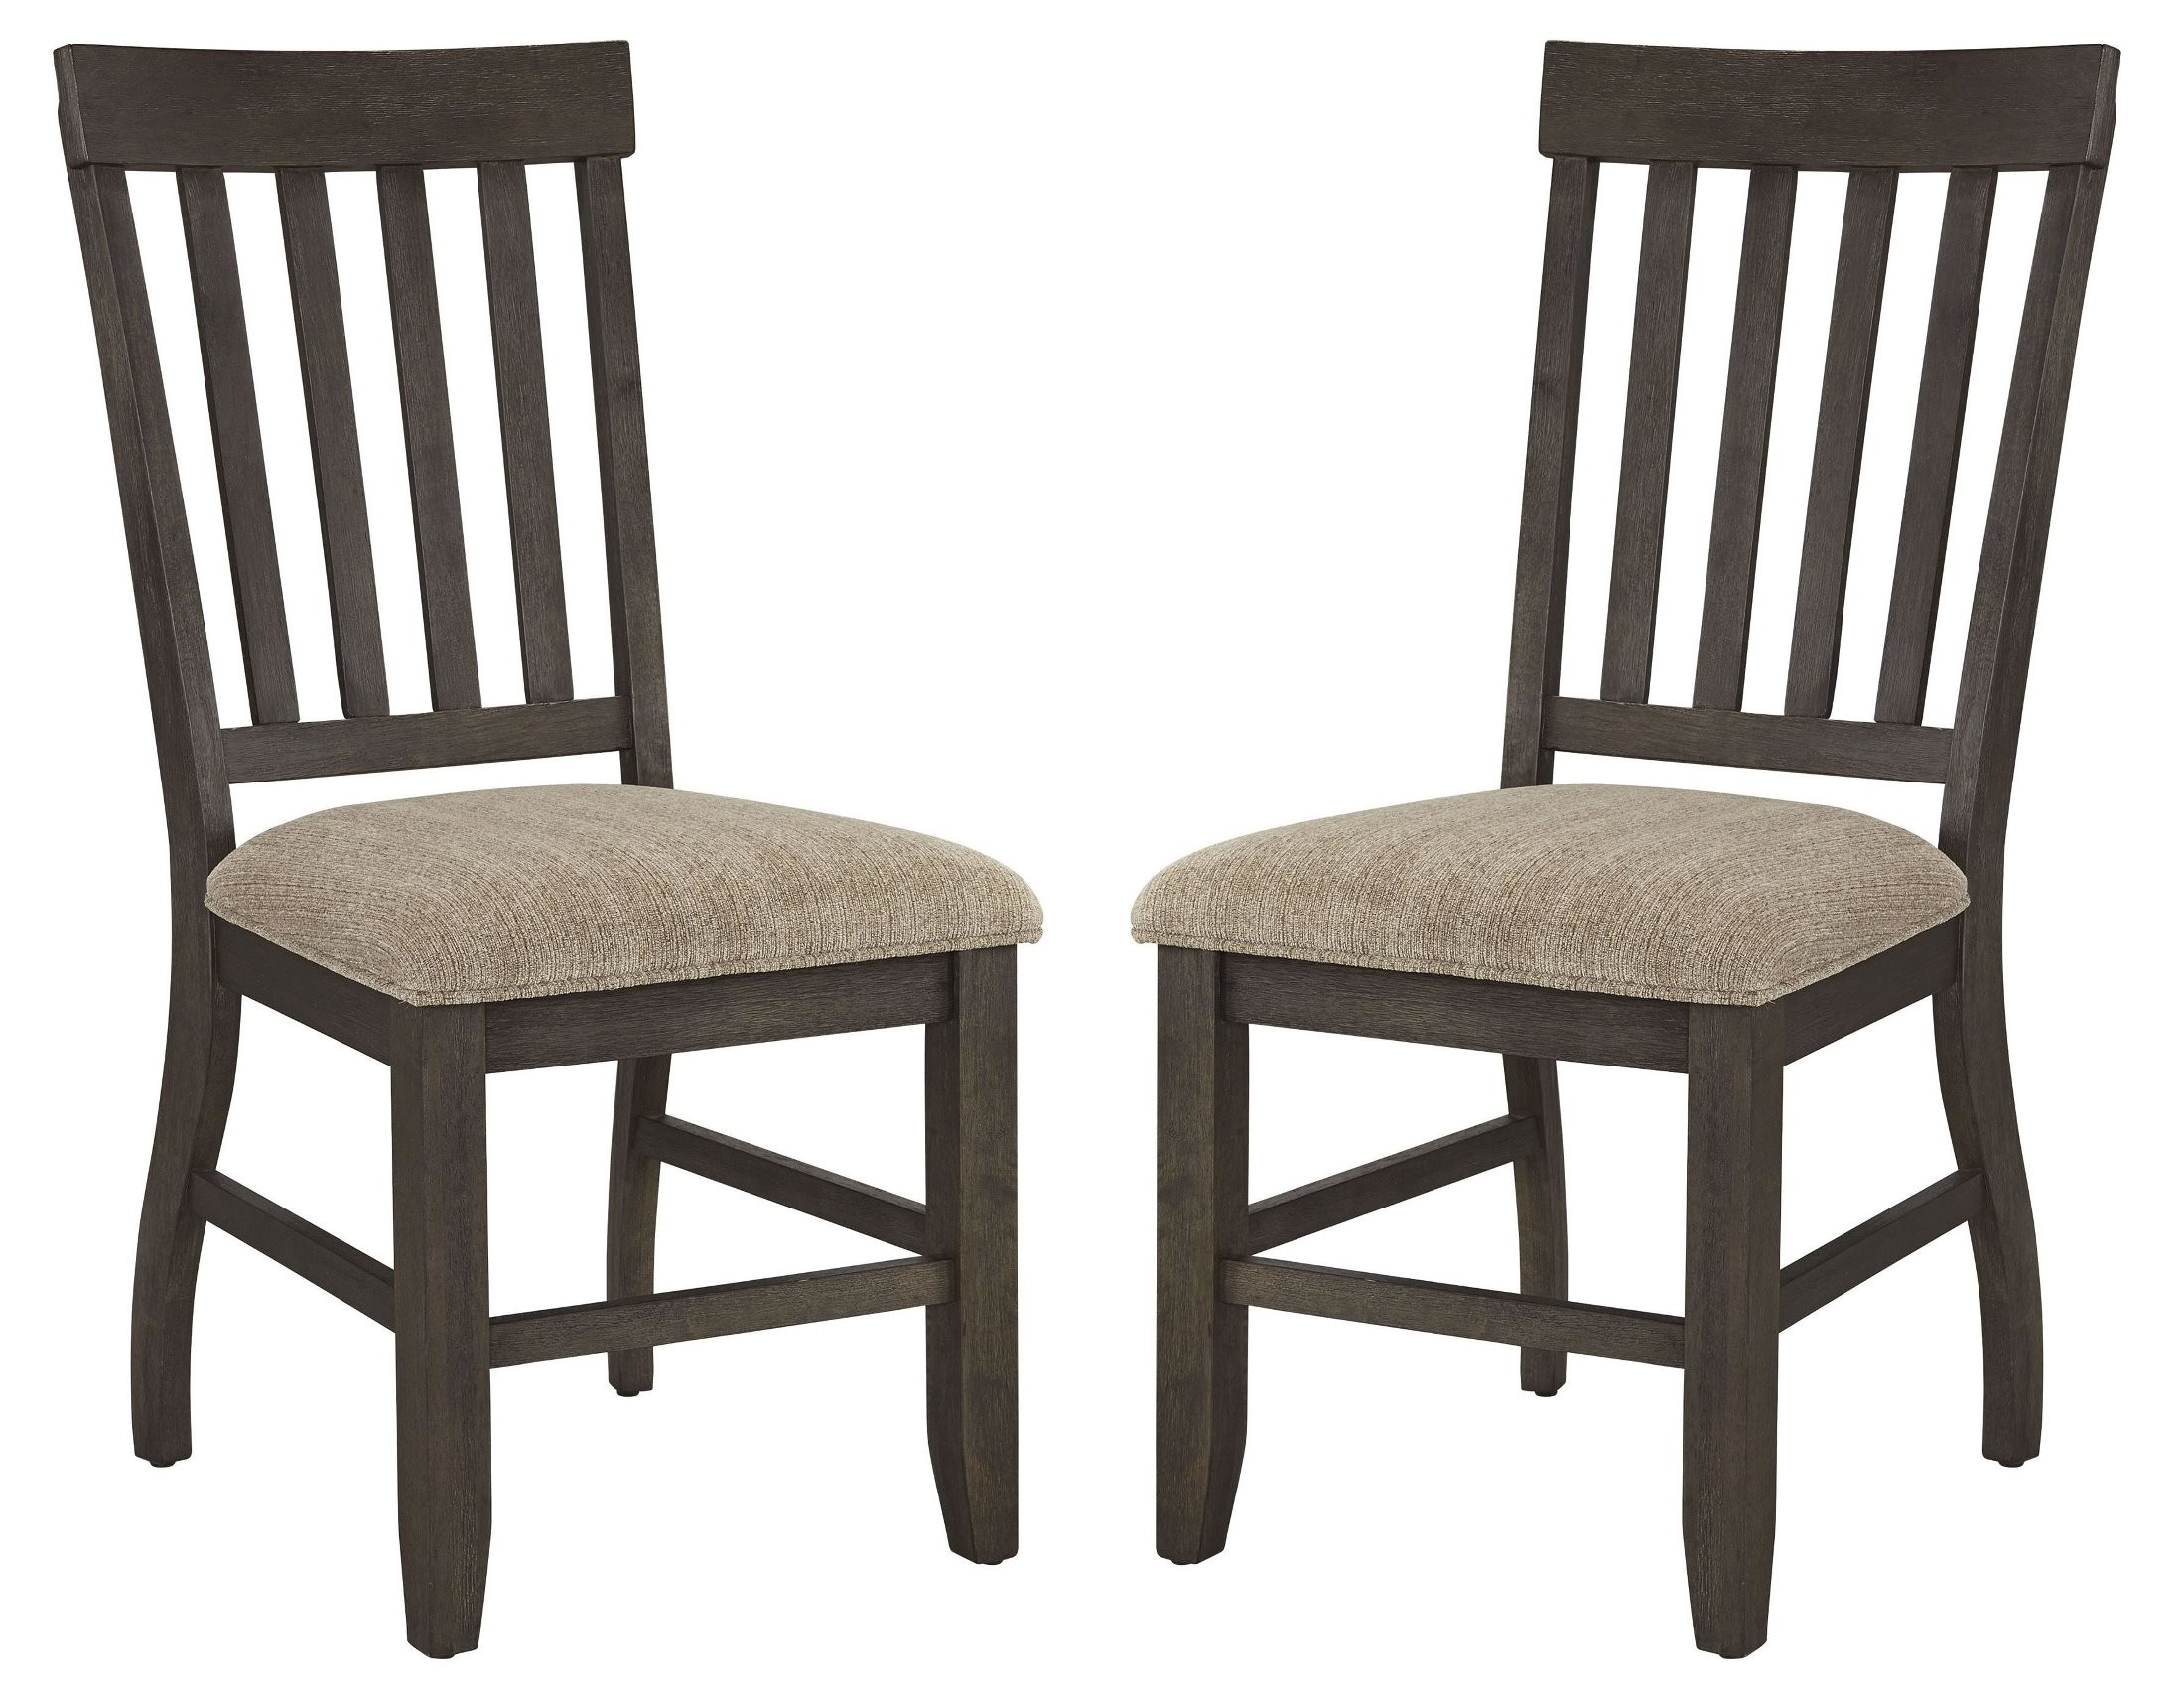 Dresbar cream dining upholstered side chair set of from